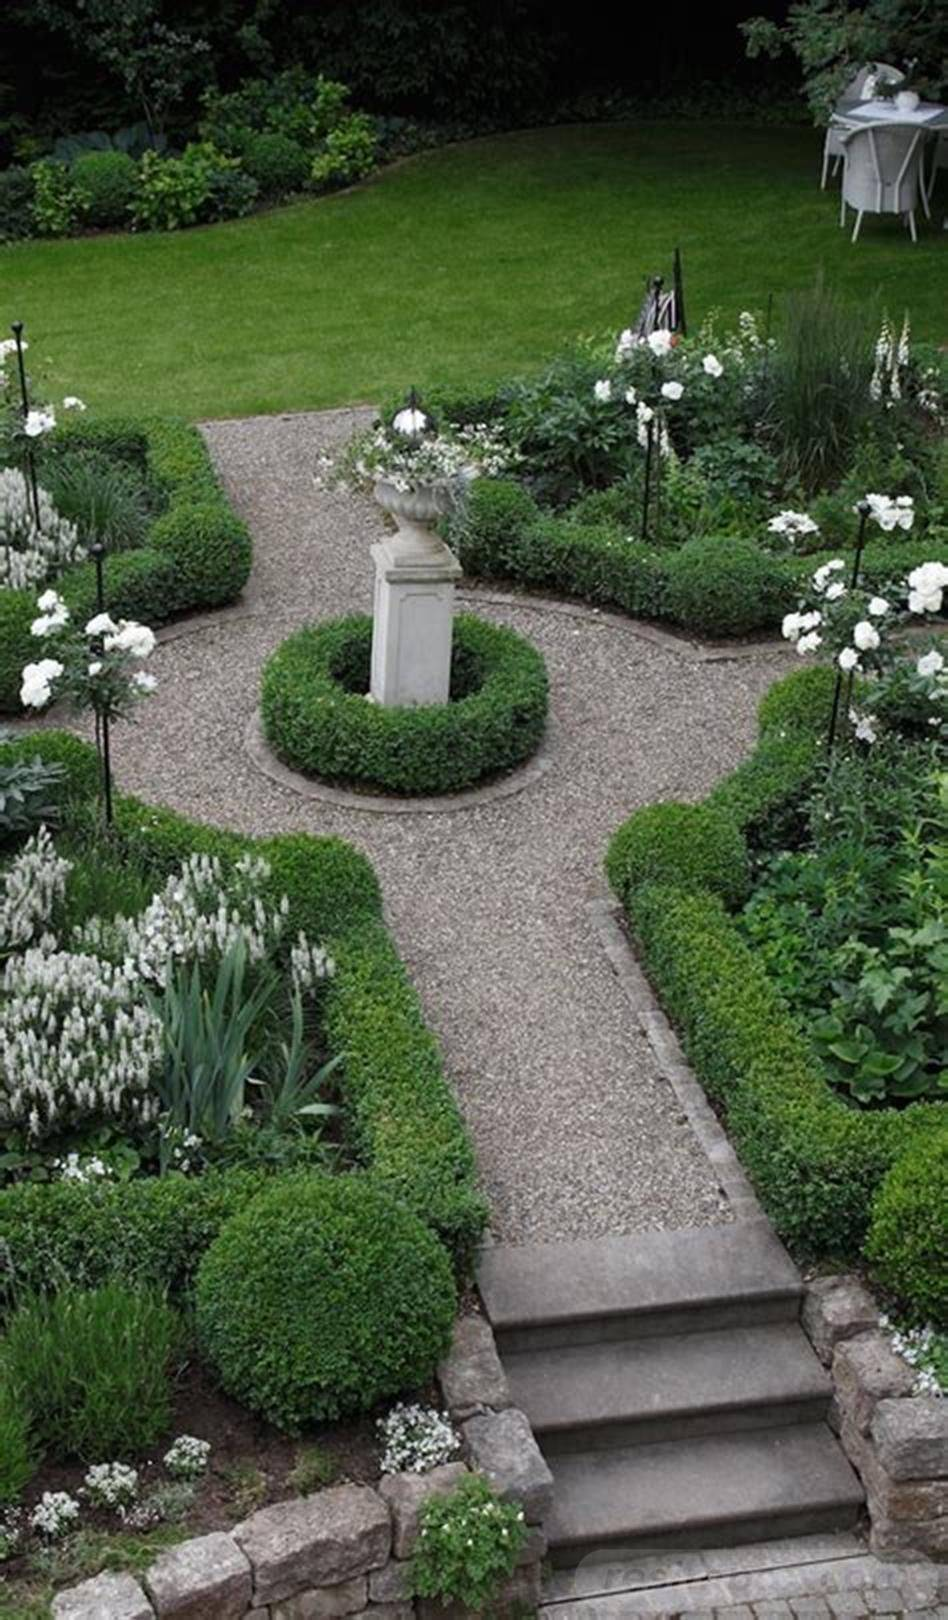 amazing garden ideas-686869380649849537